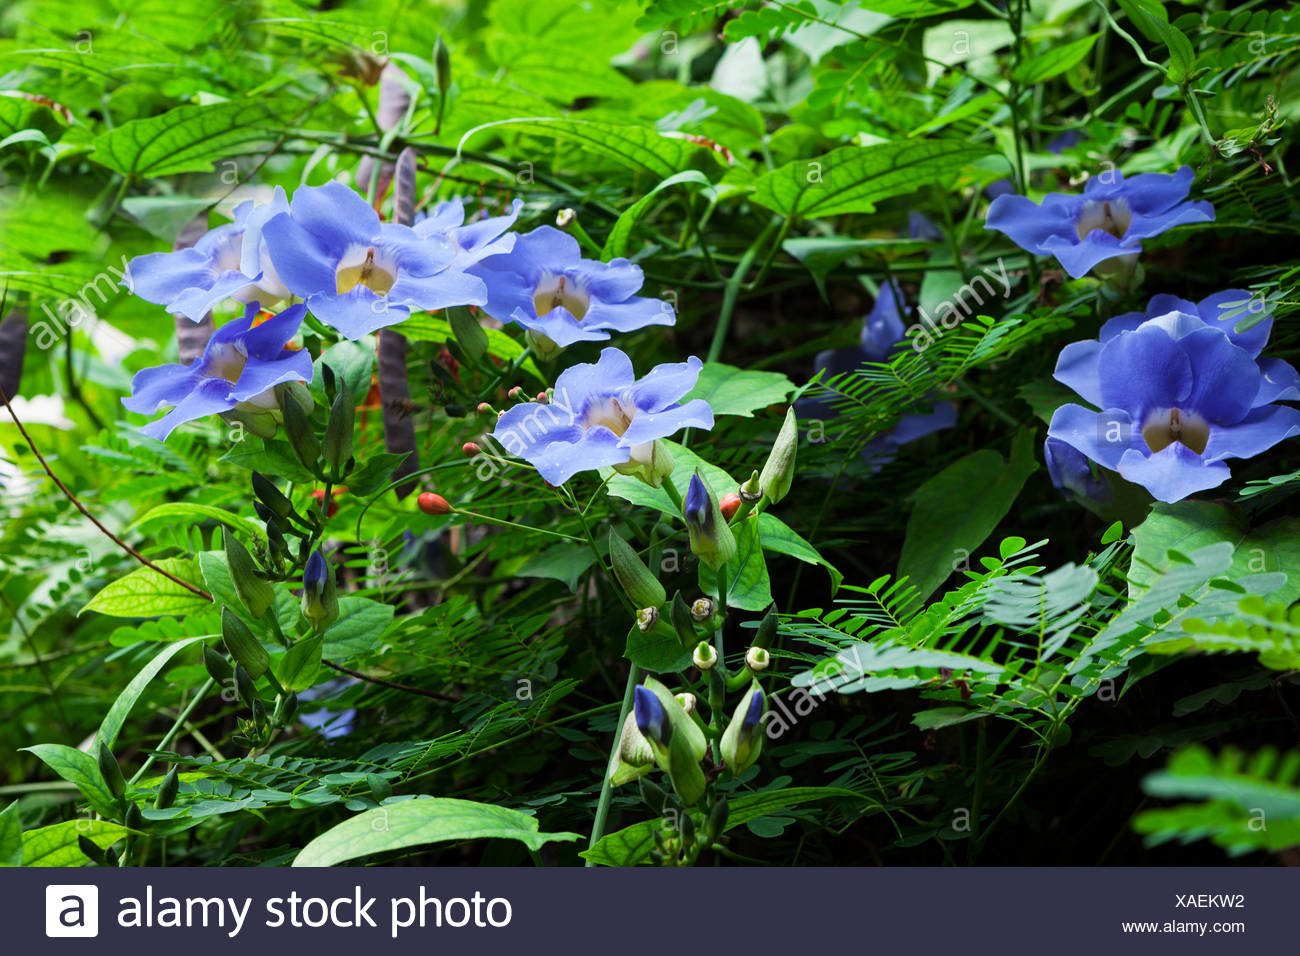 Ivy with blue flowers stock photo 281835374 alamy ivy with blue flowers izmirmasajfo